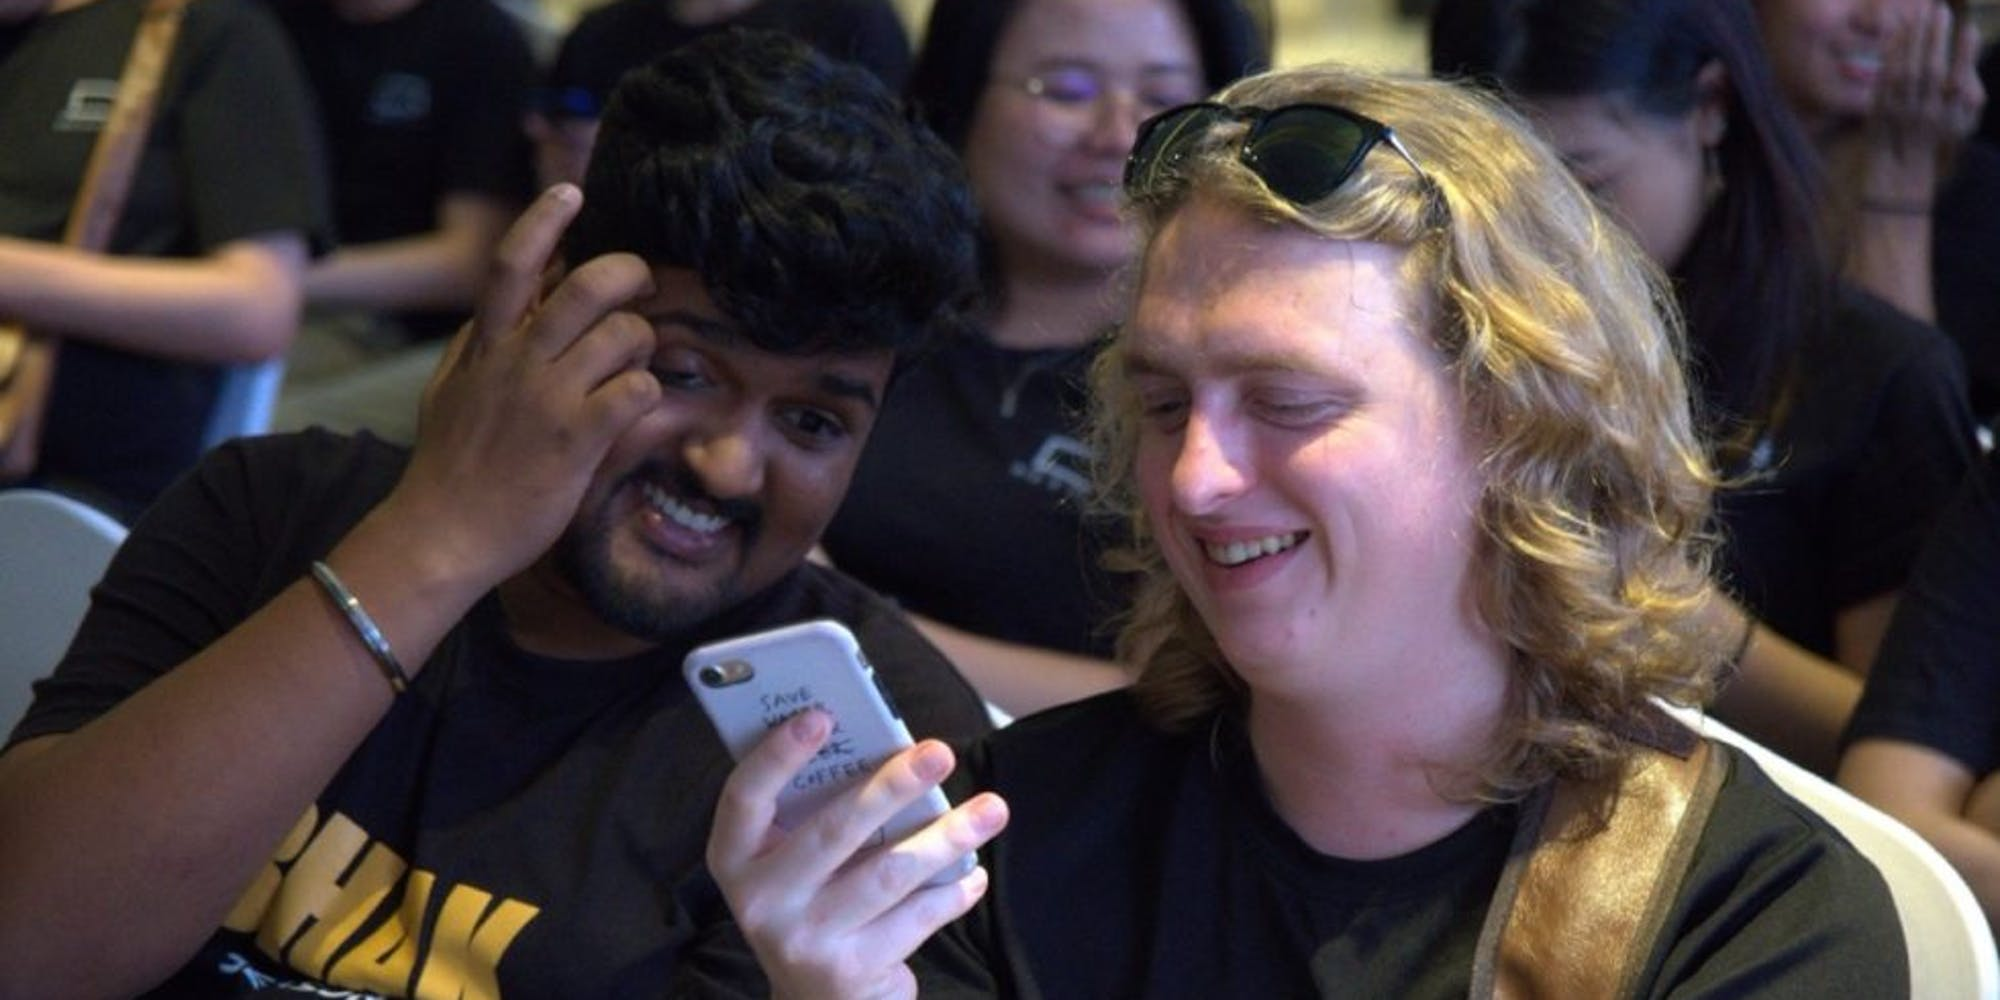 2 guys laughing while looking at their phones